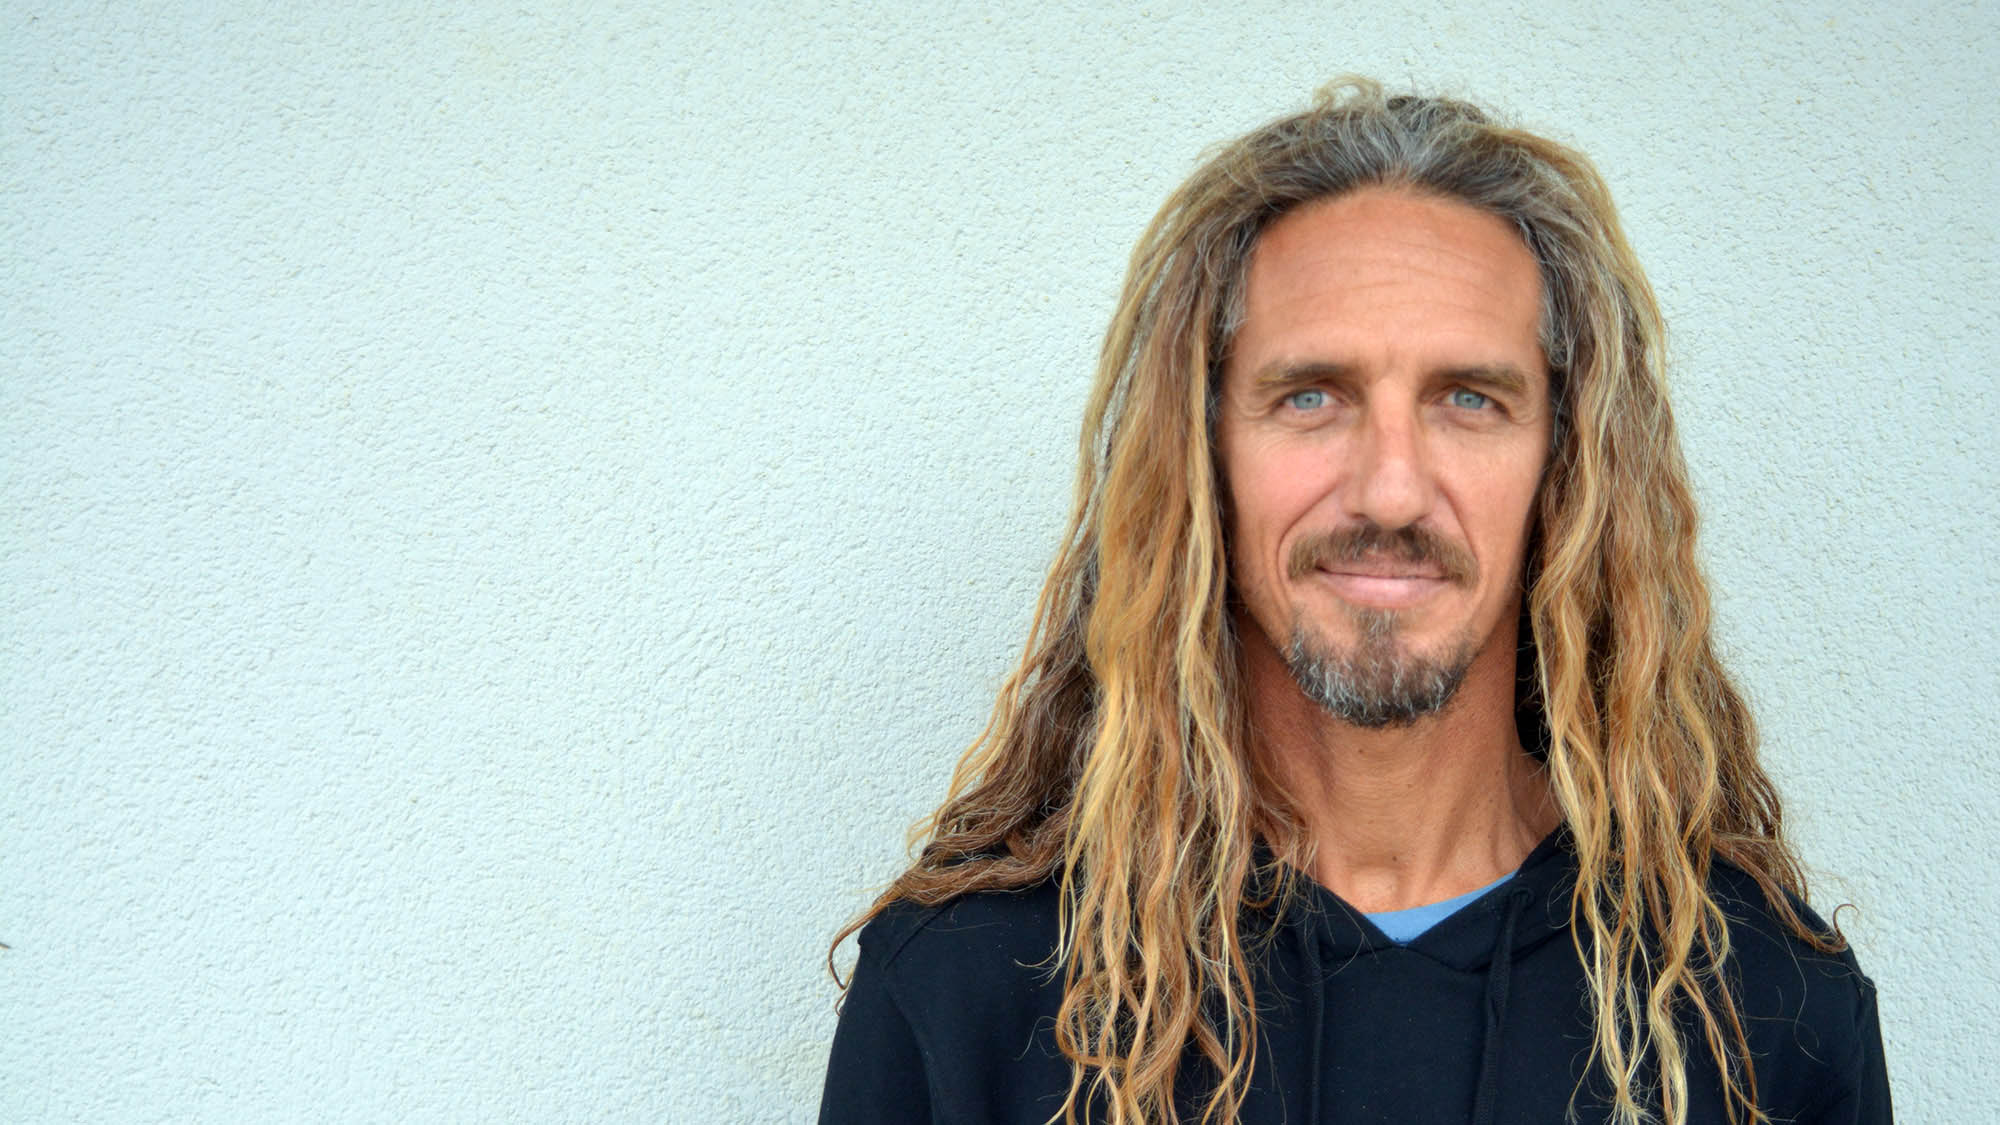 A photo of Rob Machado by WavePoolMag